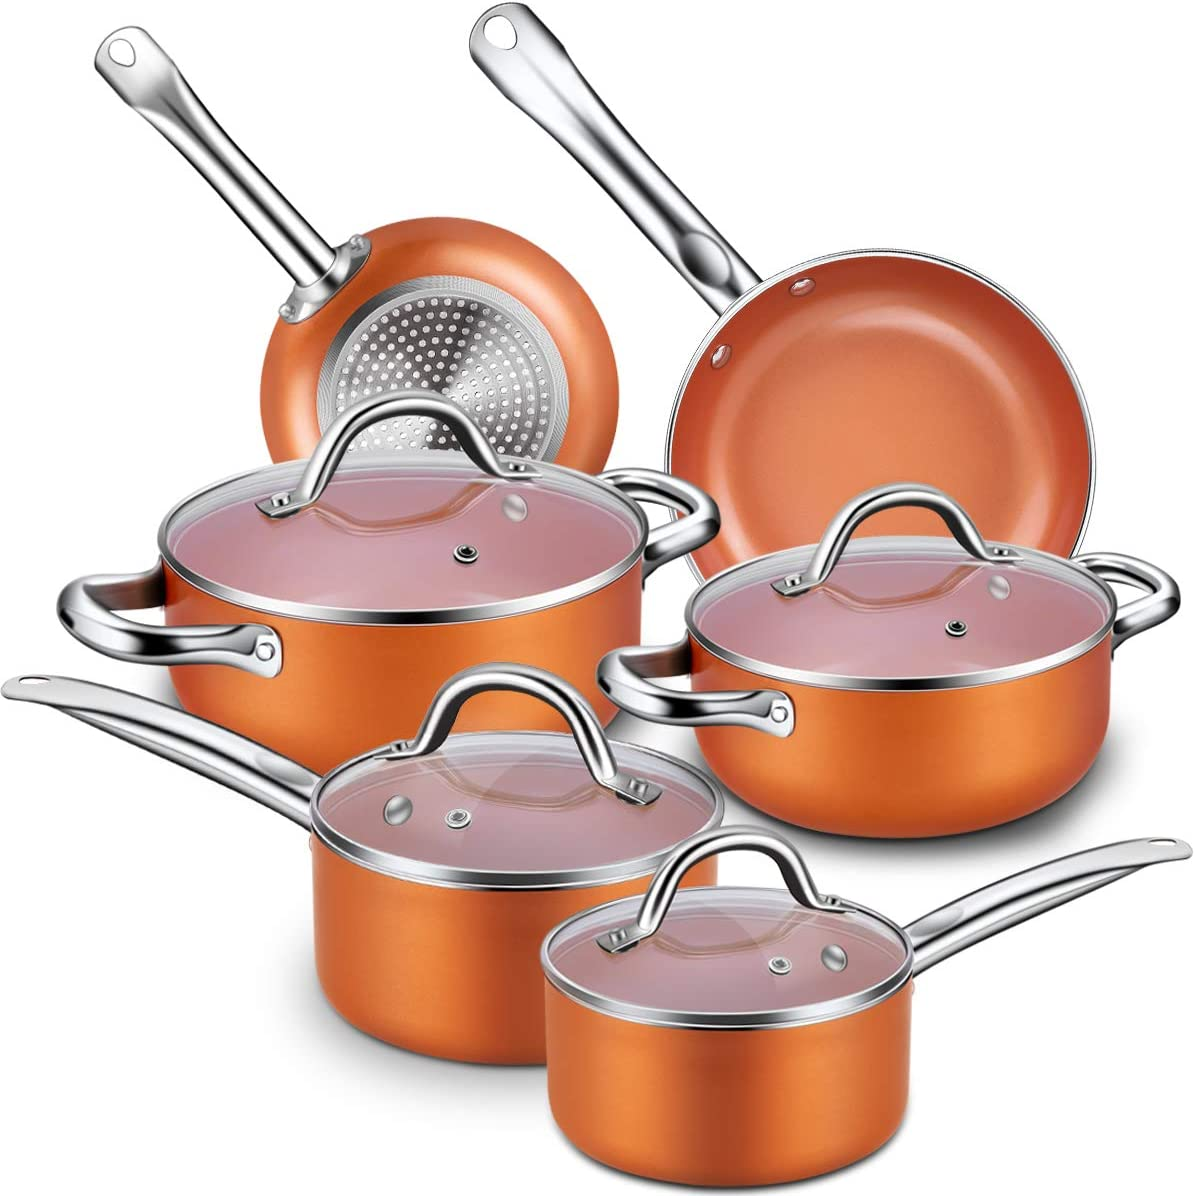 Top 10 Best Signature Cookware For Gas Stove [ Buying Guide -2021] 6